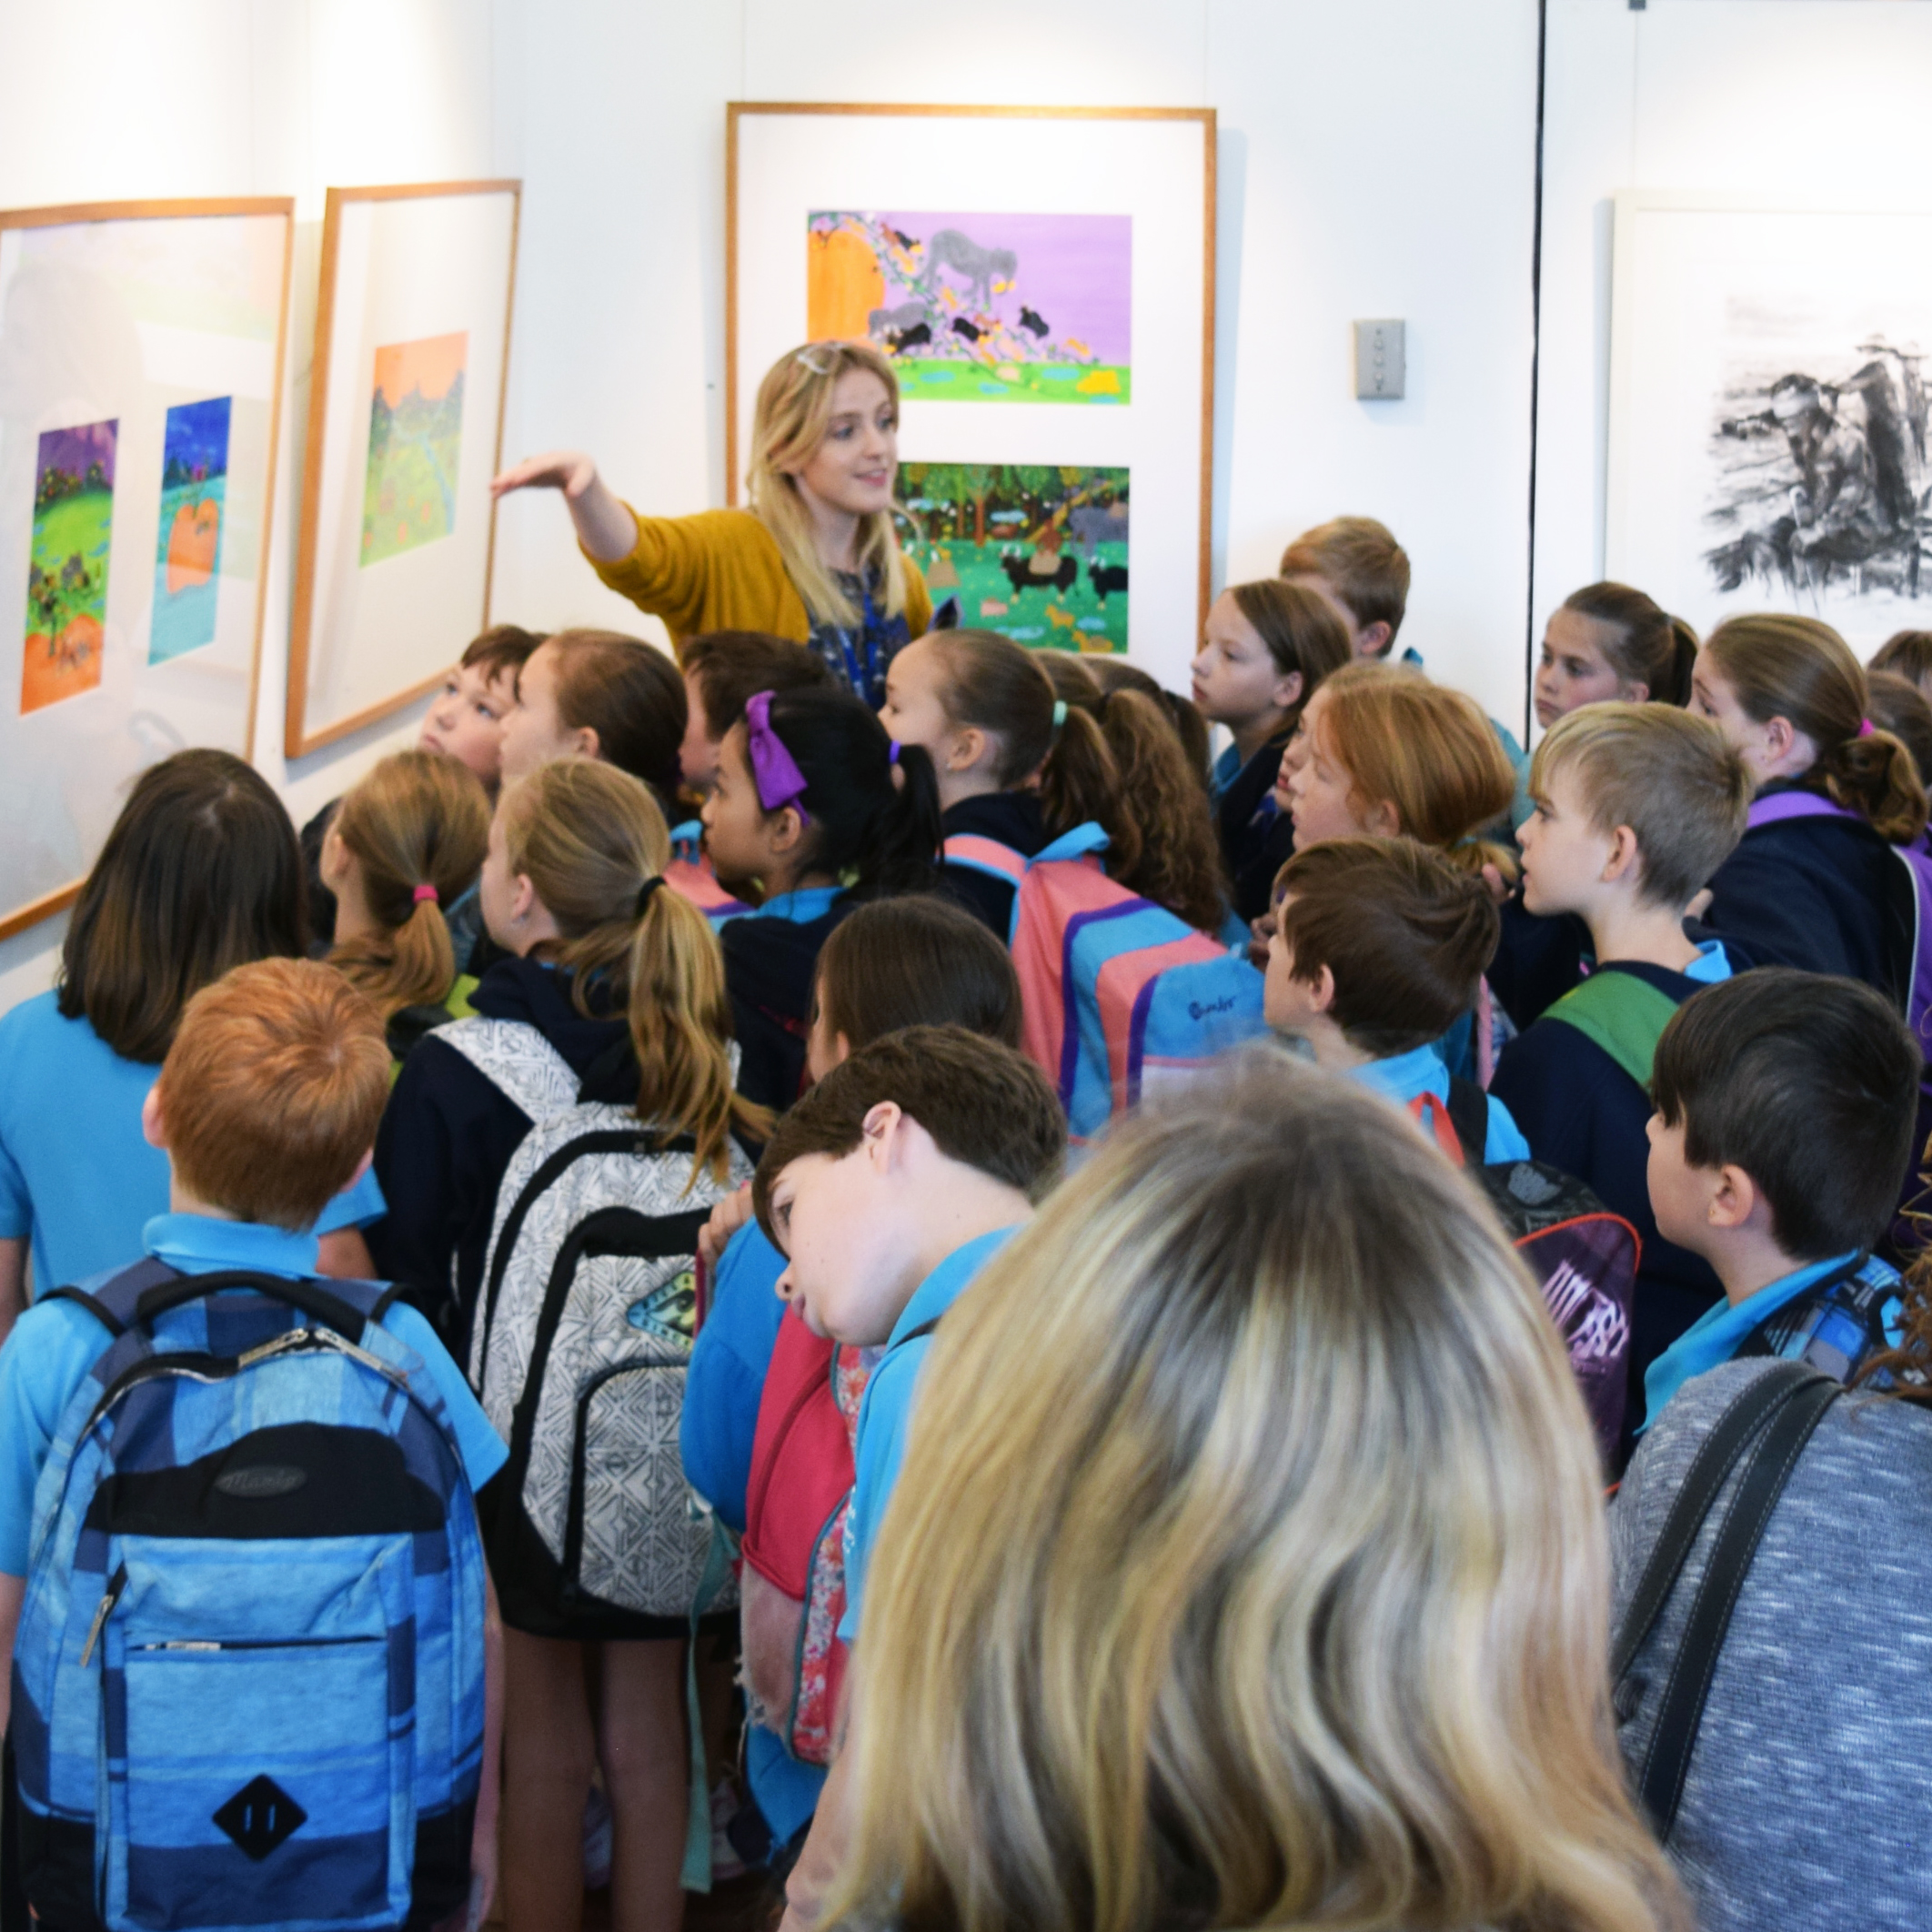 Exhibition Tours - Contact us for a FREE tour of an upcoming exhibition with your class.